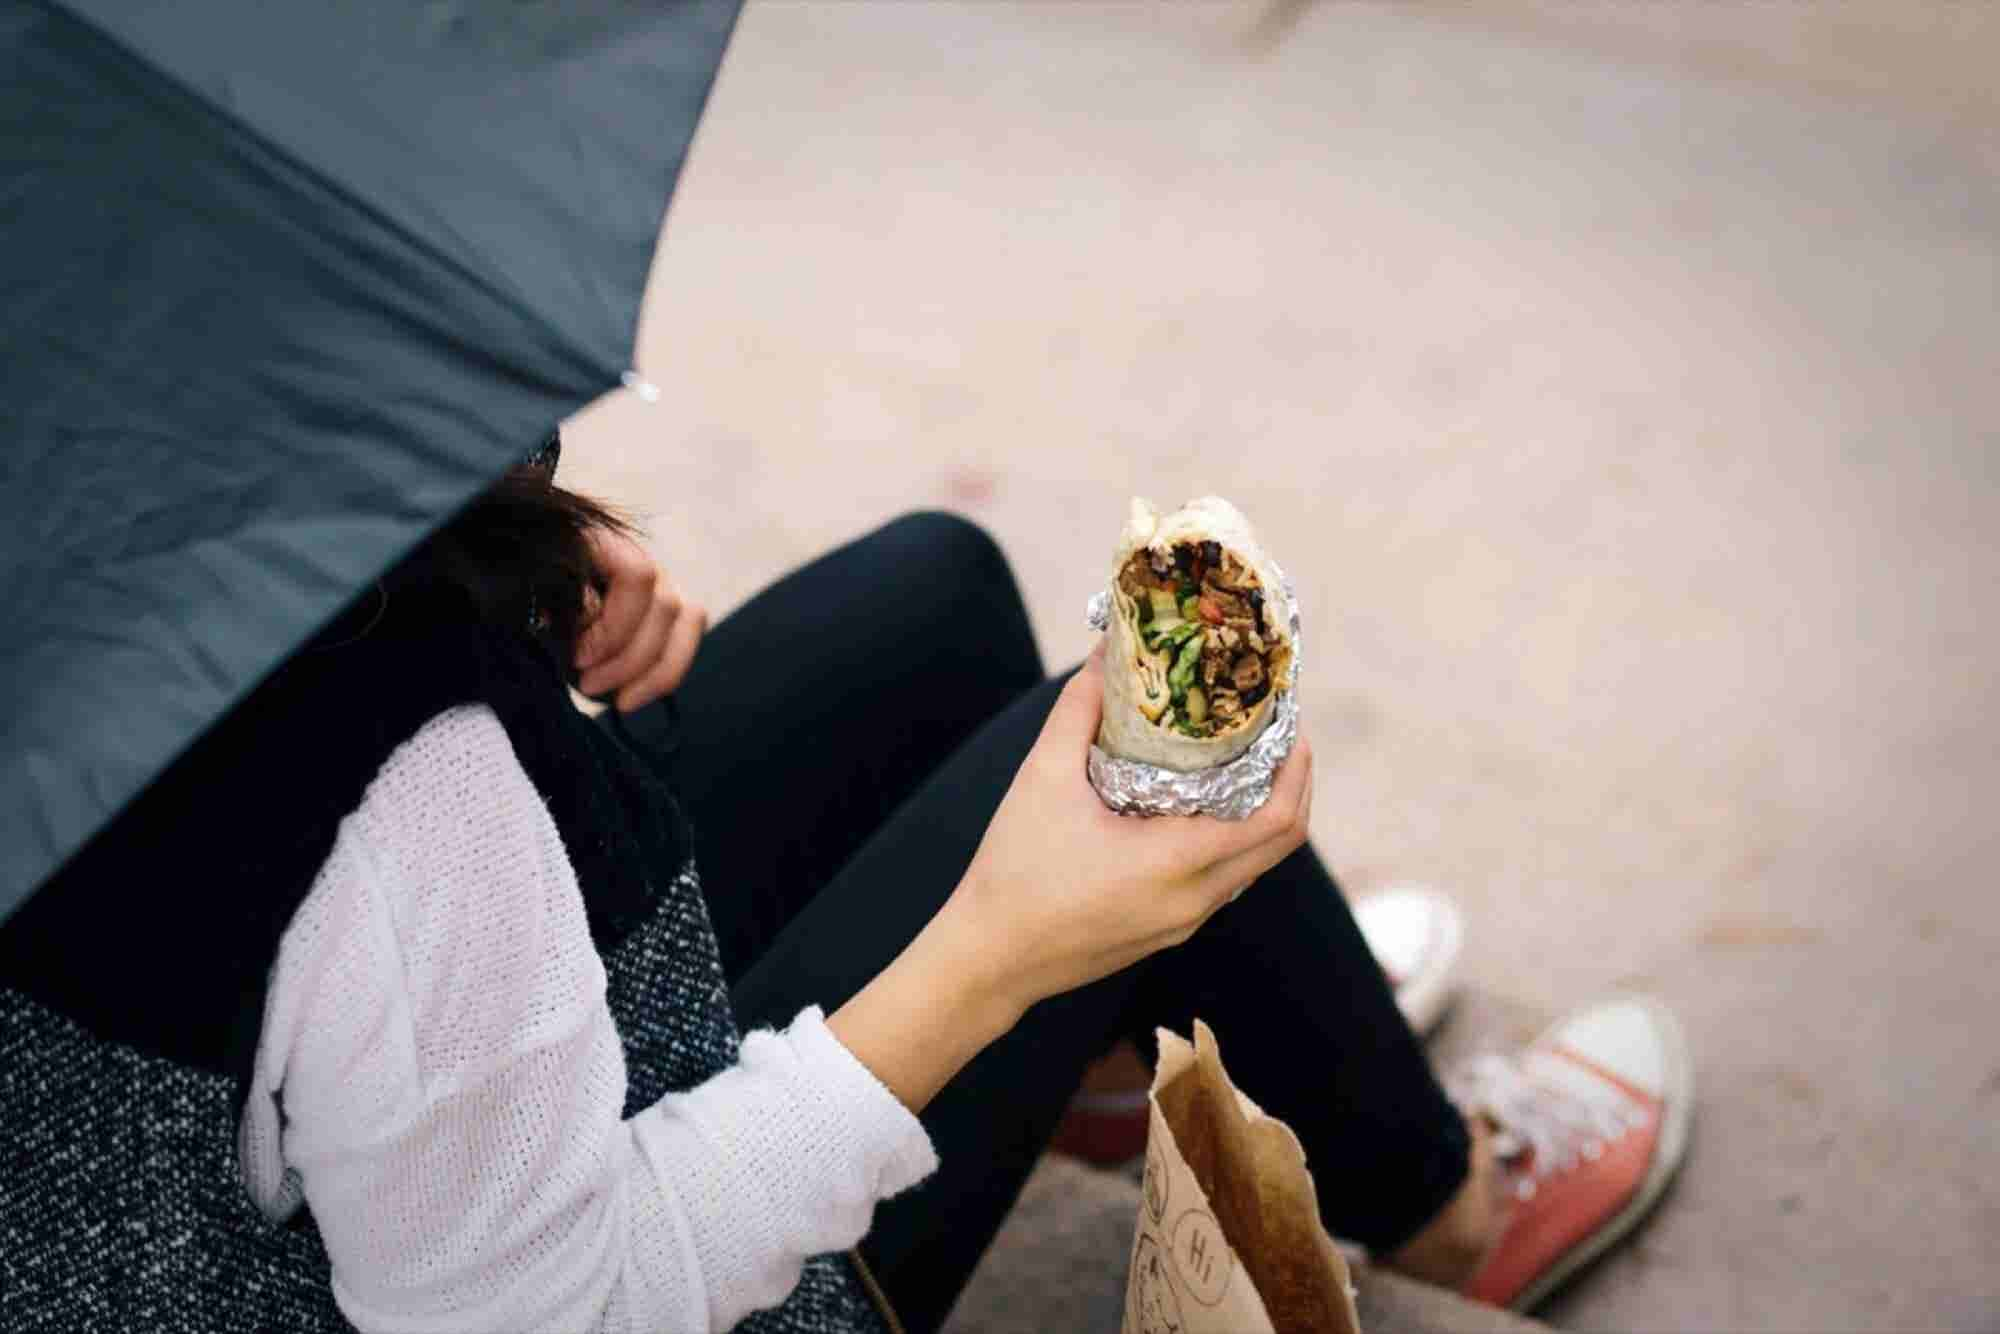 Chipotle Is Spending an Astronomical Amount of Money on Free Burritos